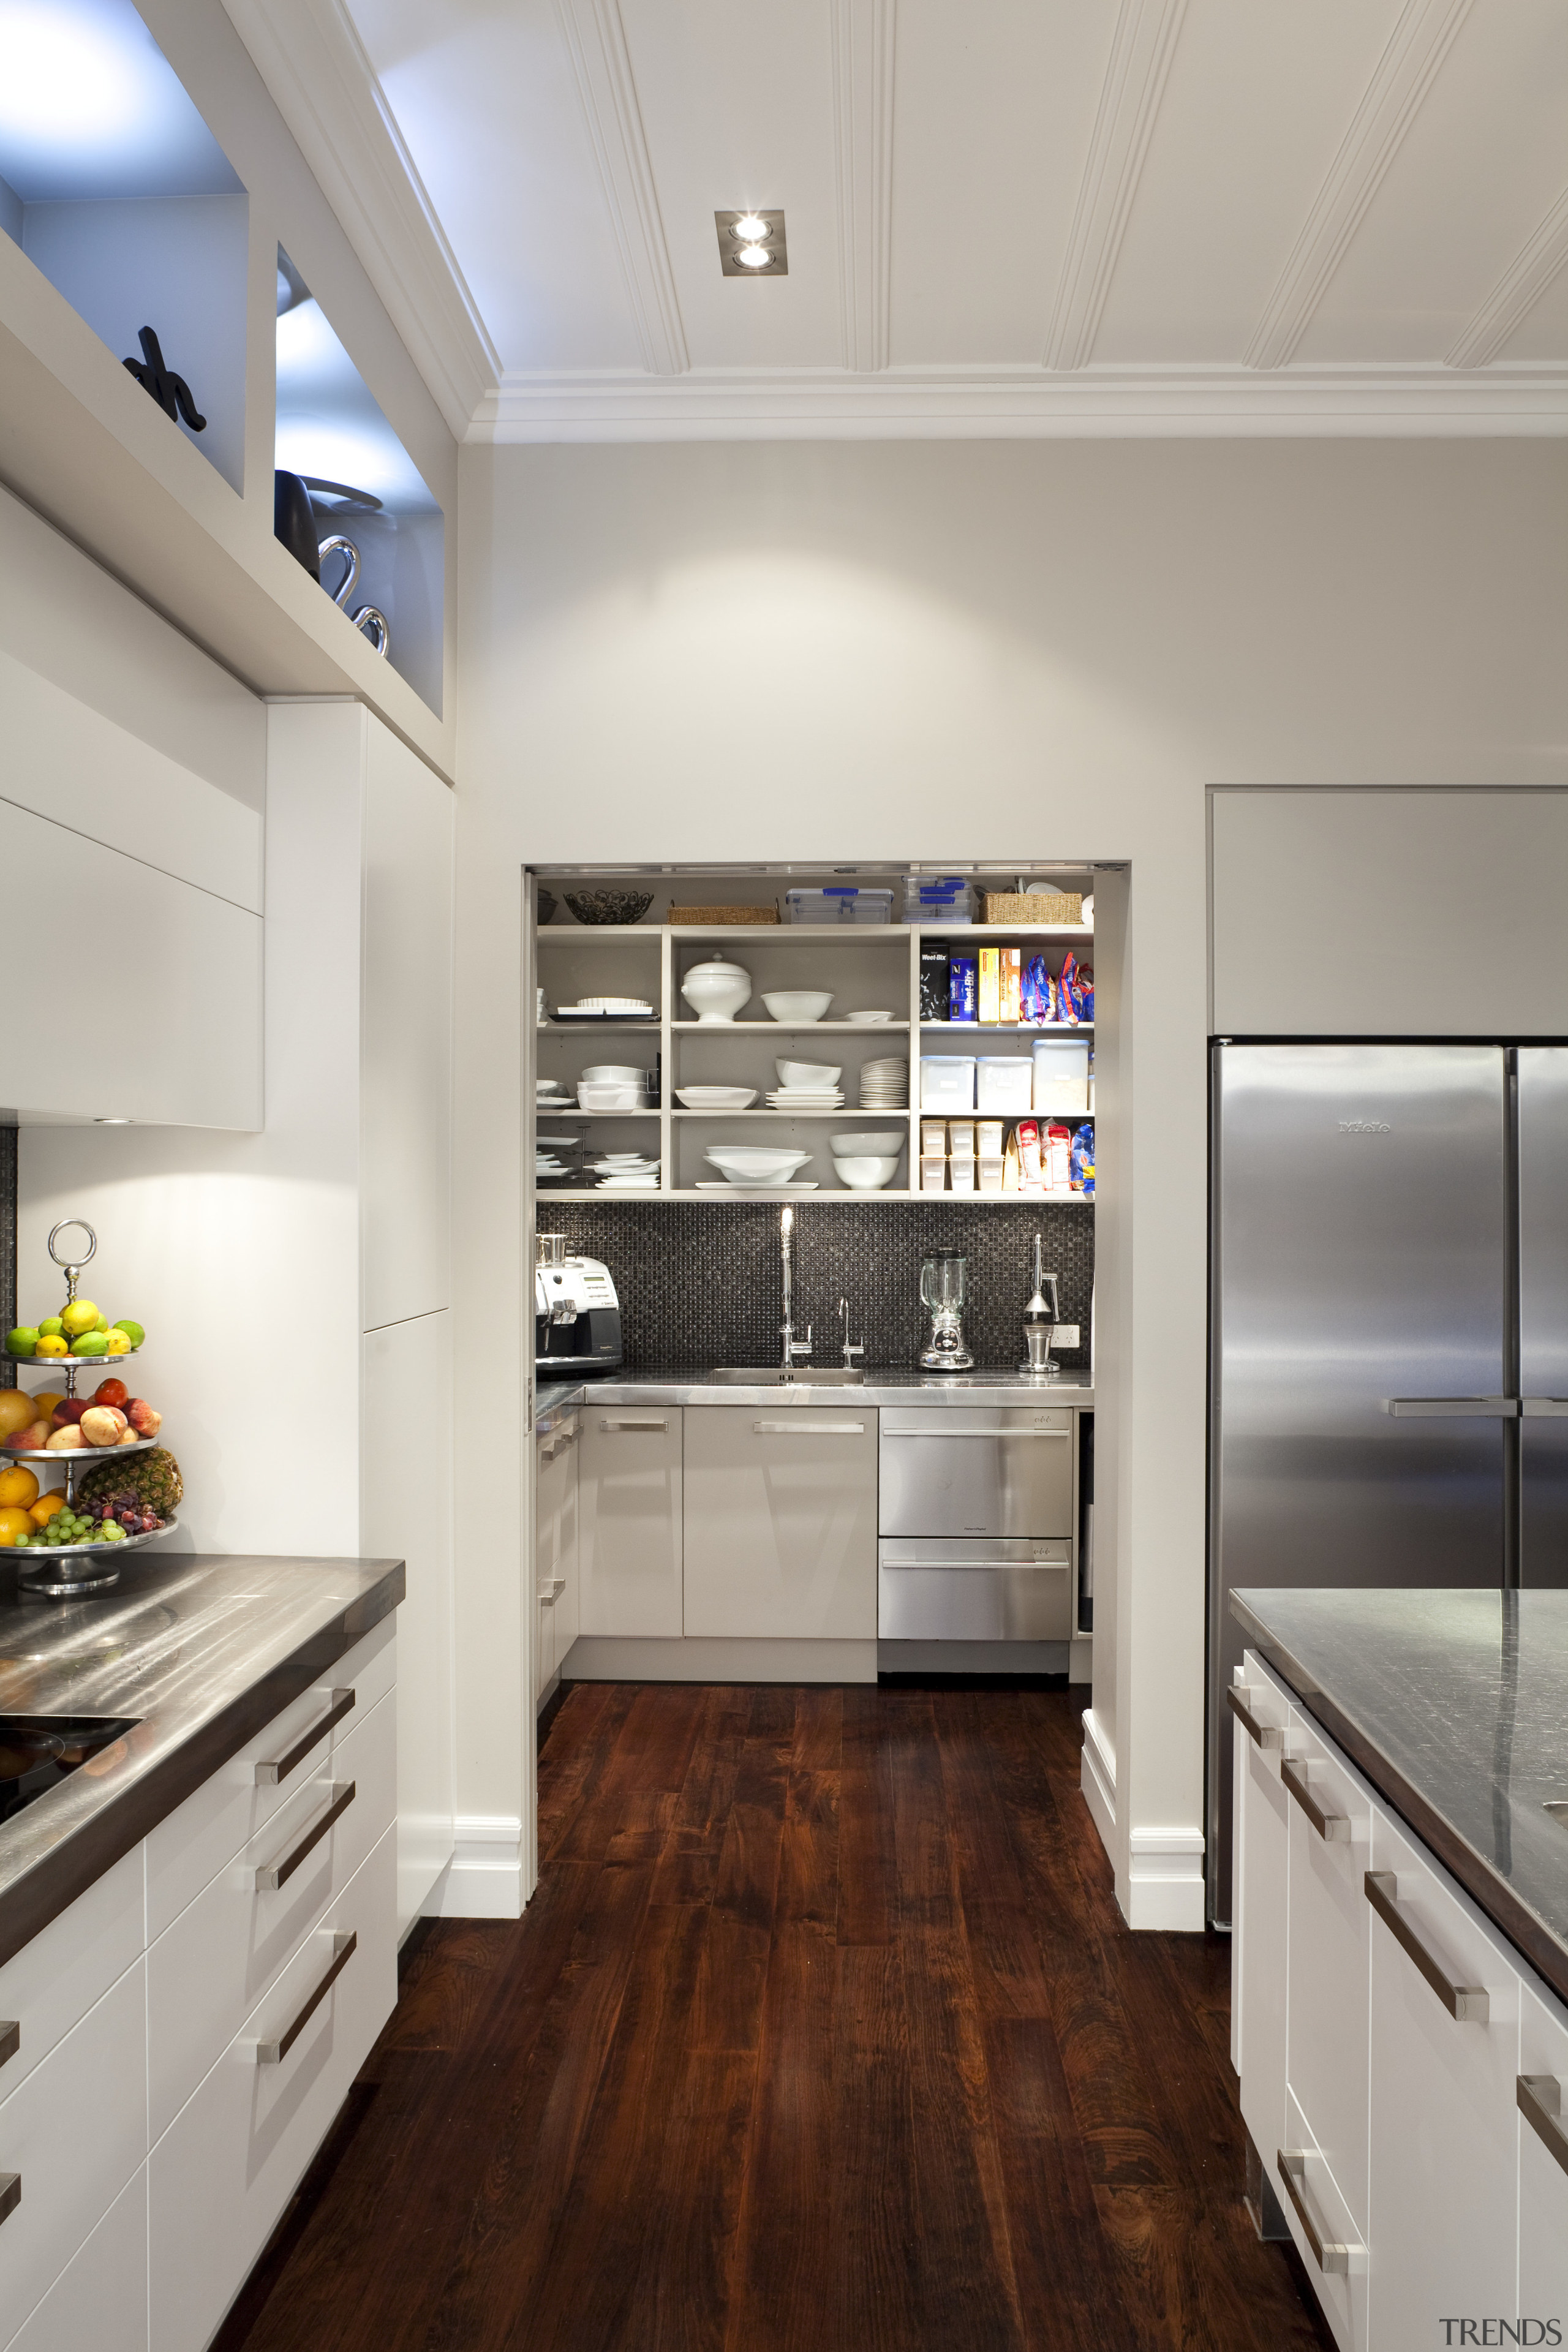 scullery through open archway at rear of kitchen cabinetry, countertop, cuisine classique, floor, flooring, hardwood, home appliance, interior design, kitchen, room, wood flooring, gray